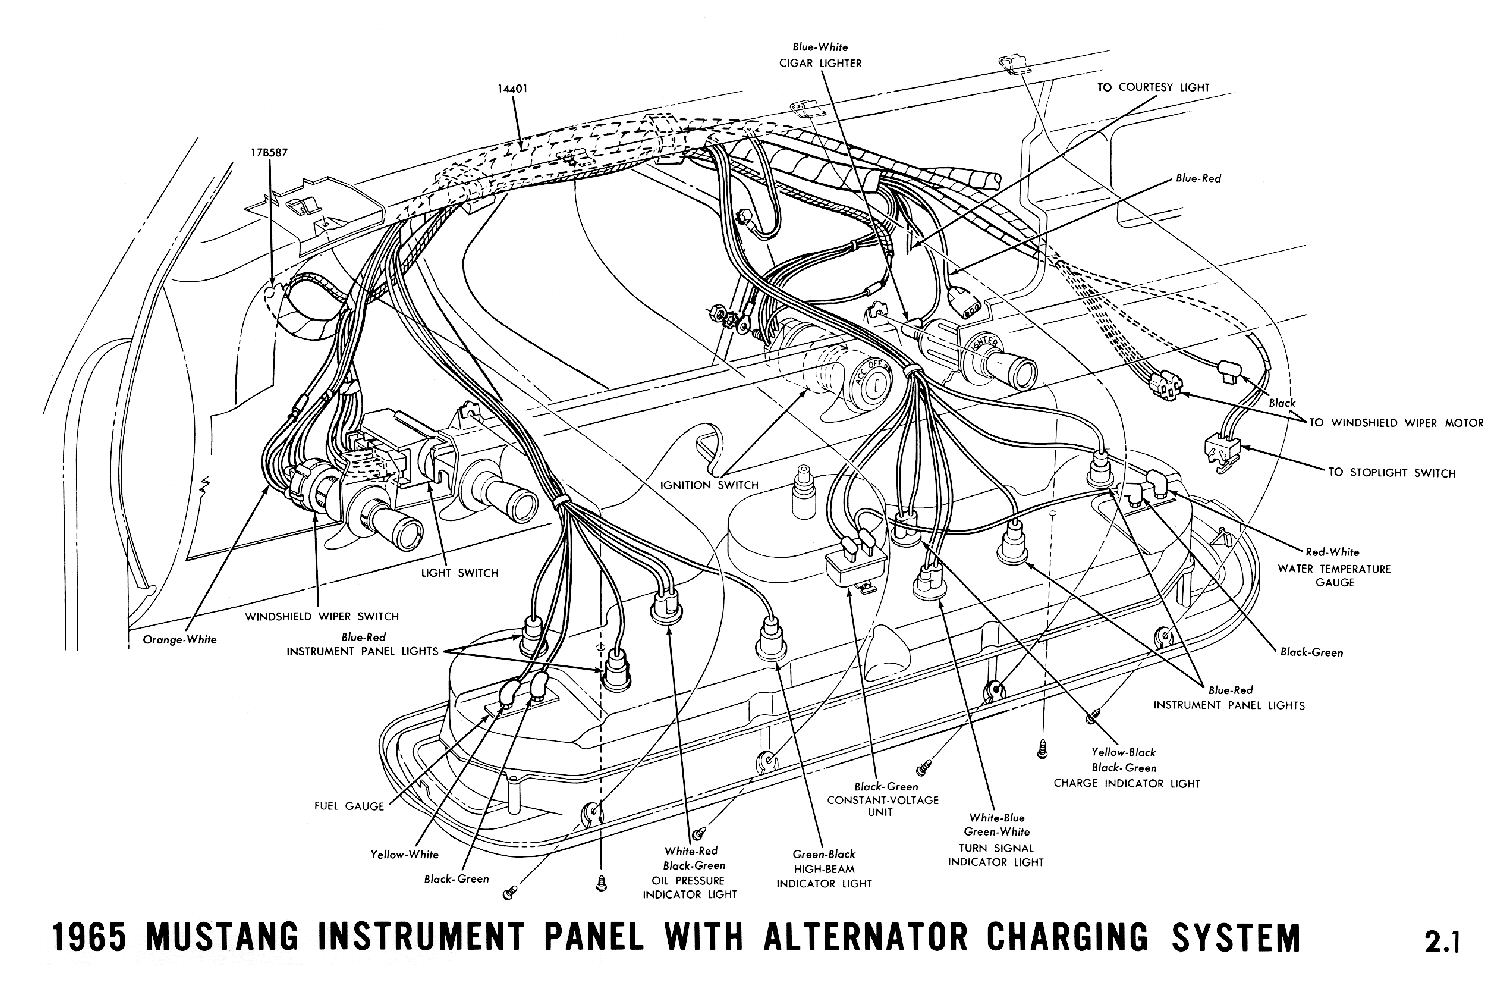 1965a 1965 mustang wiring diagrams average joe restoration 1965 ford mustang wiring diagrams at mifinder.co